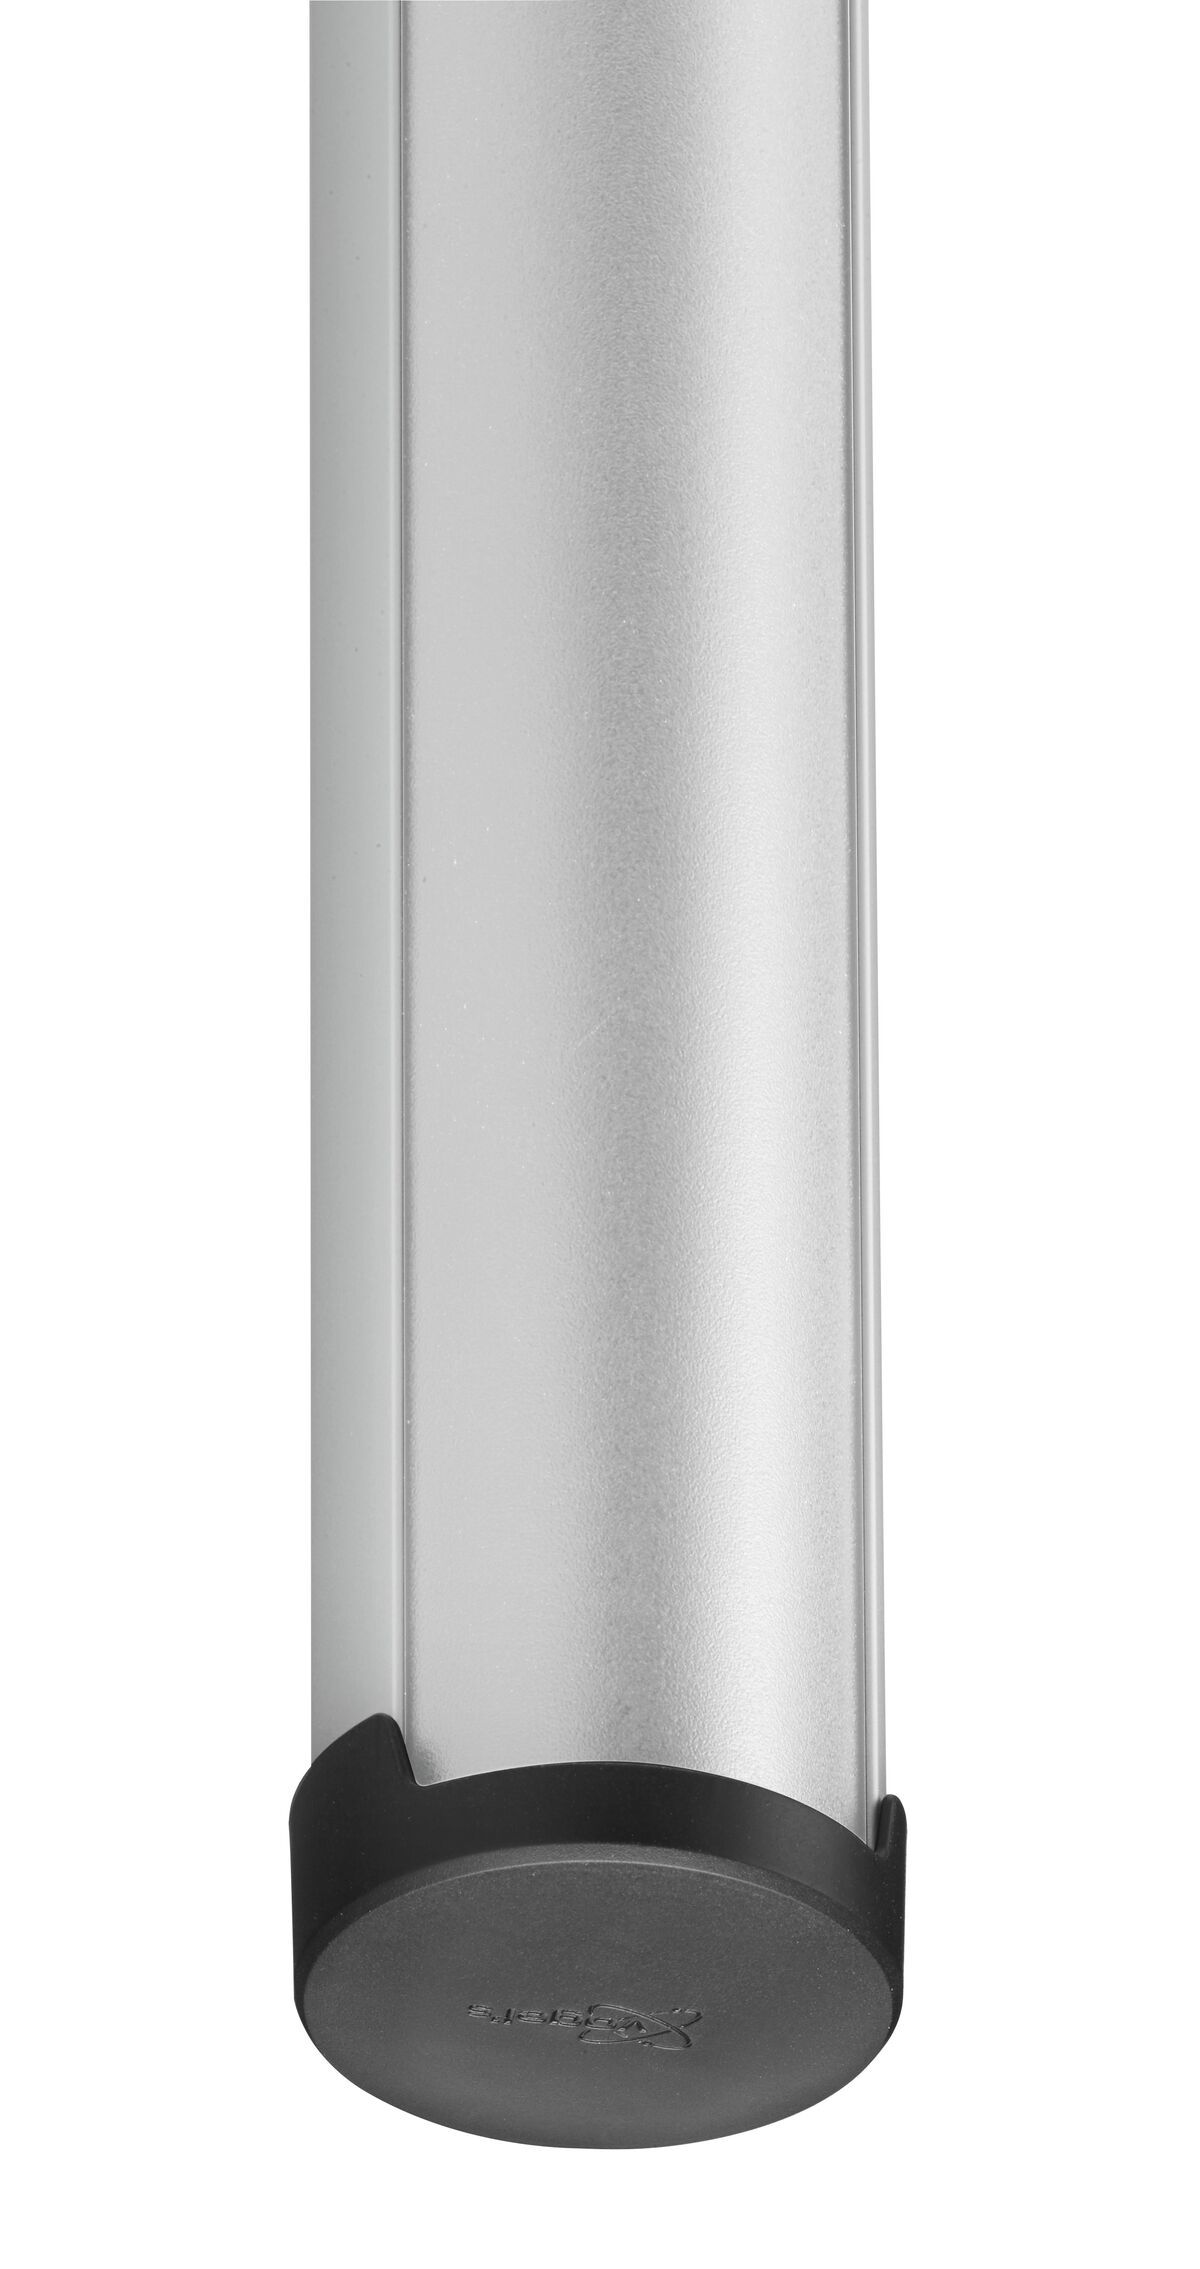 Vogel's PUC 2415 Tube 150 cm, silver - Product